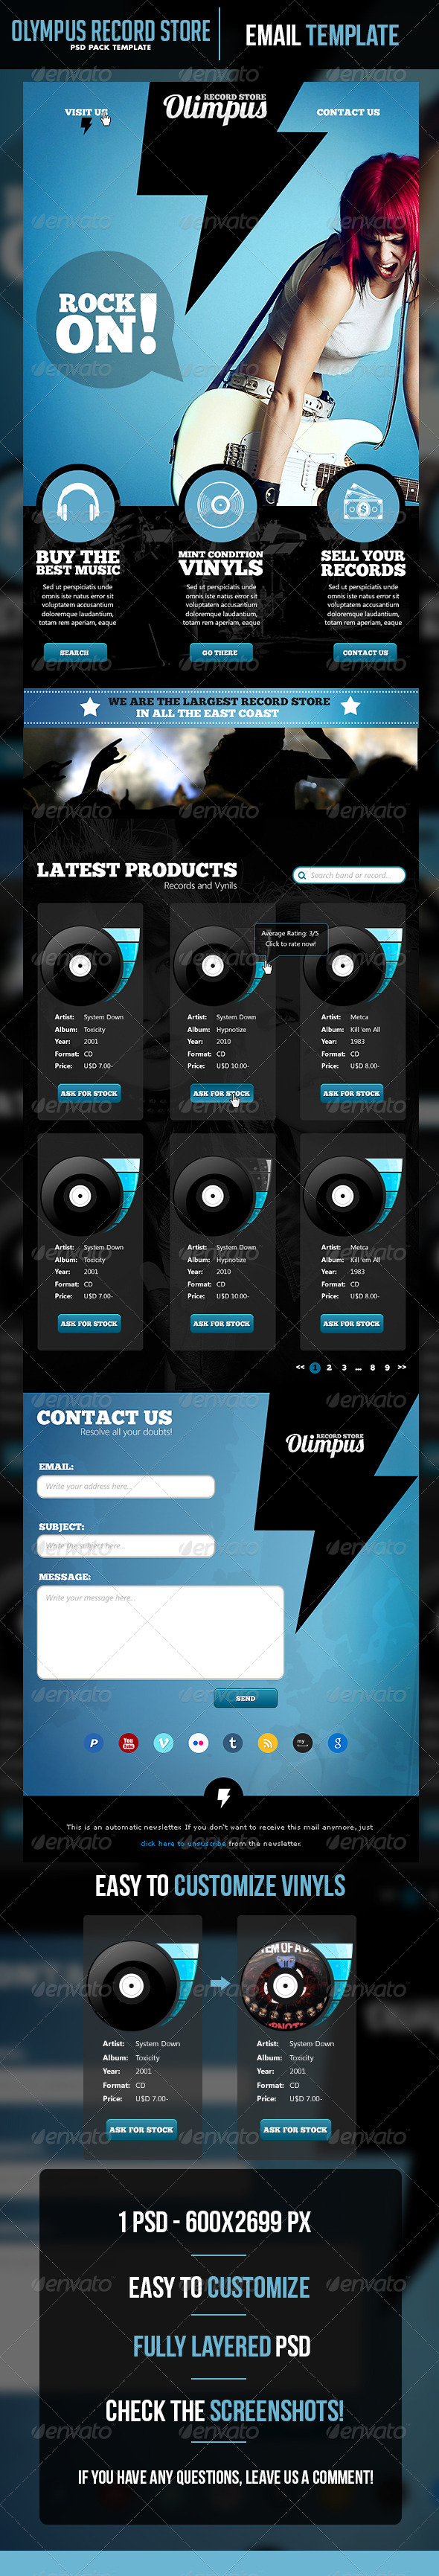 Olympus Record Store Email Template - E-newsletters Web Elements